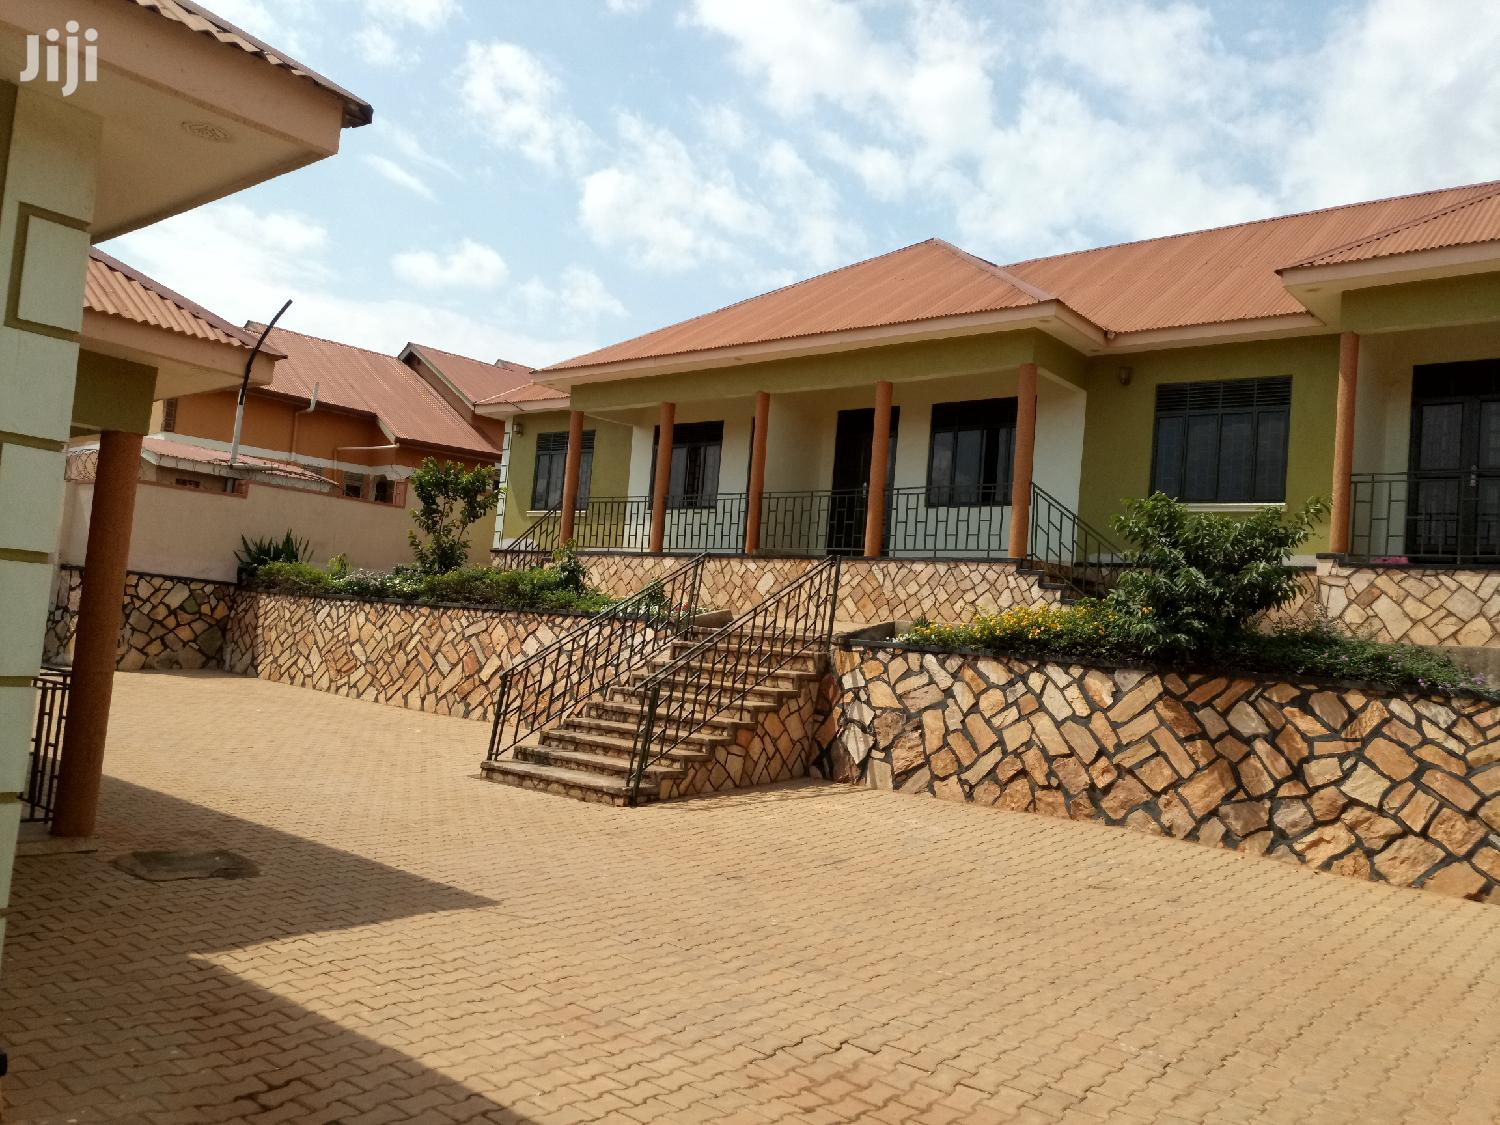 Two Bedroom House In Kiwatule For Rent